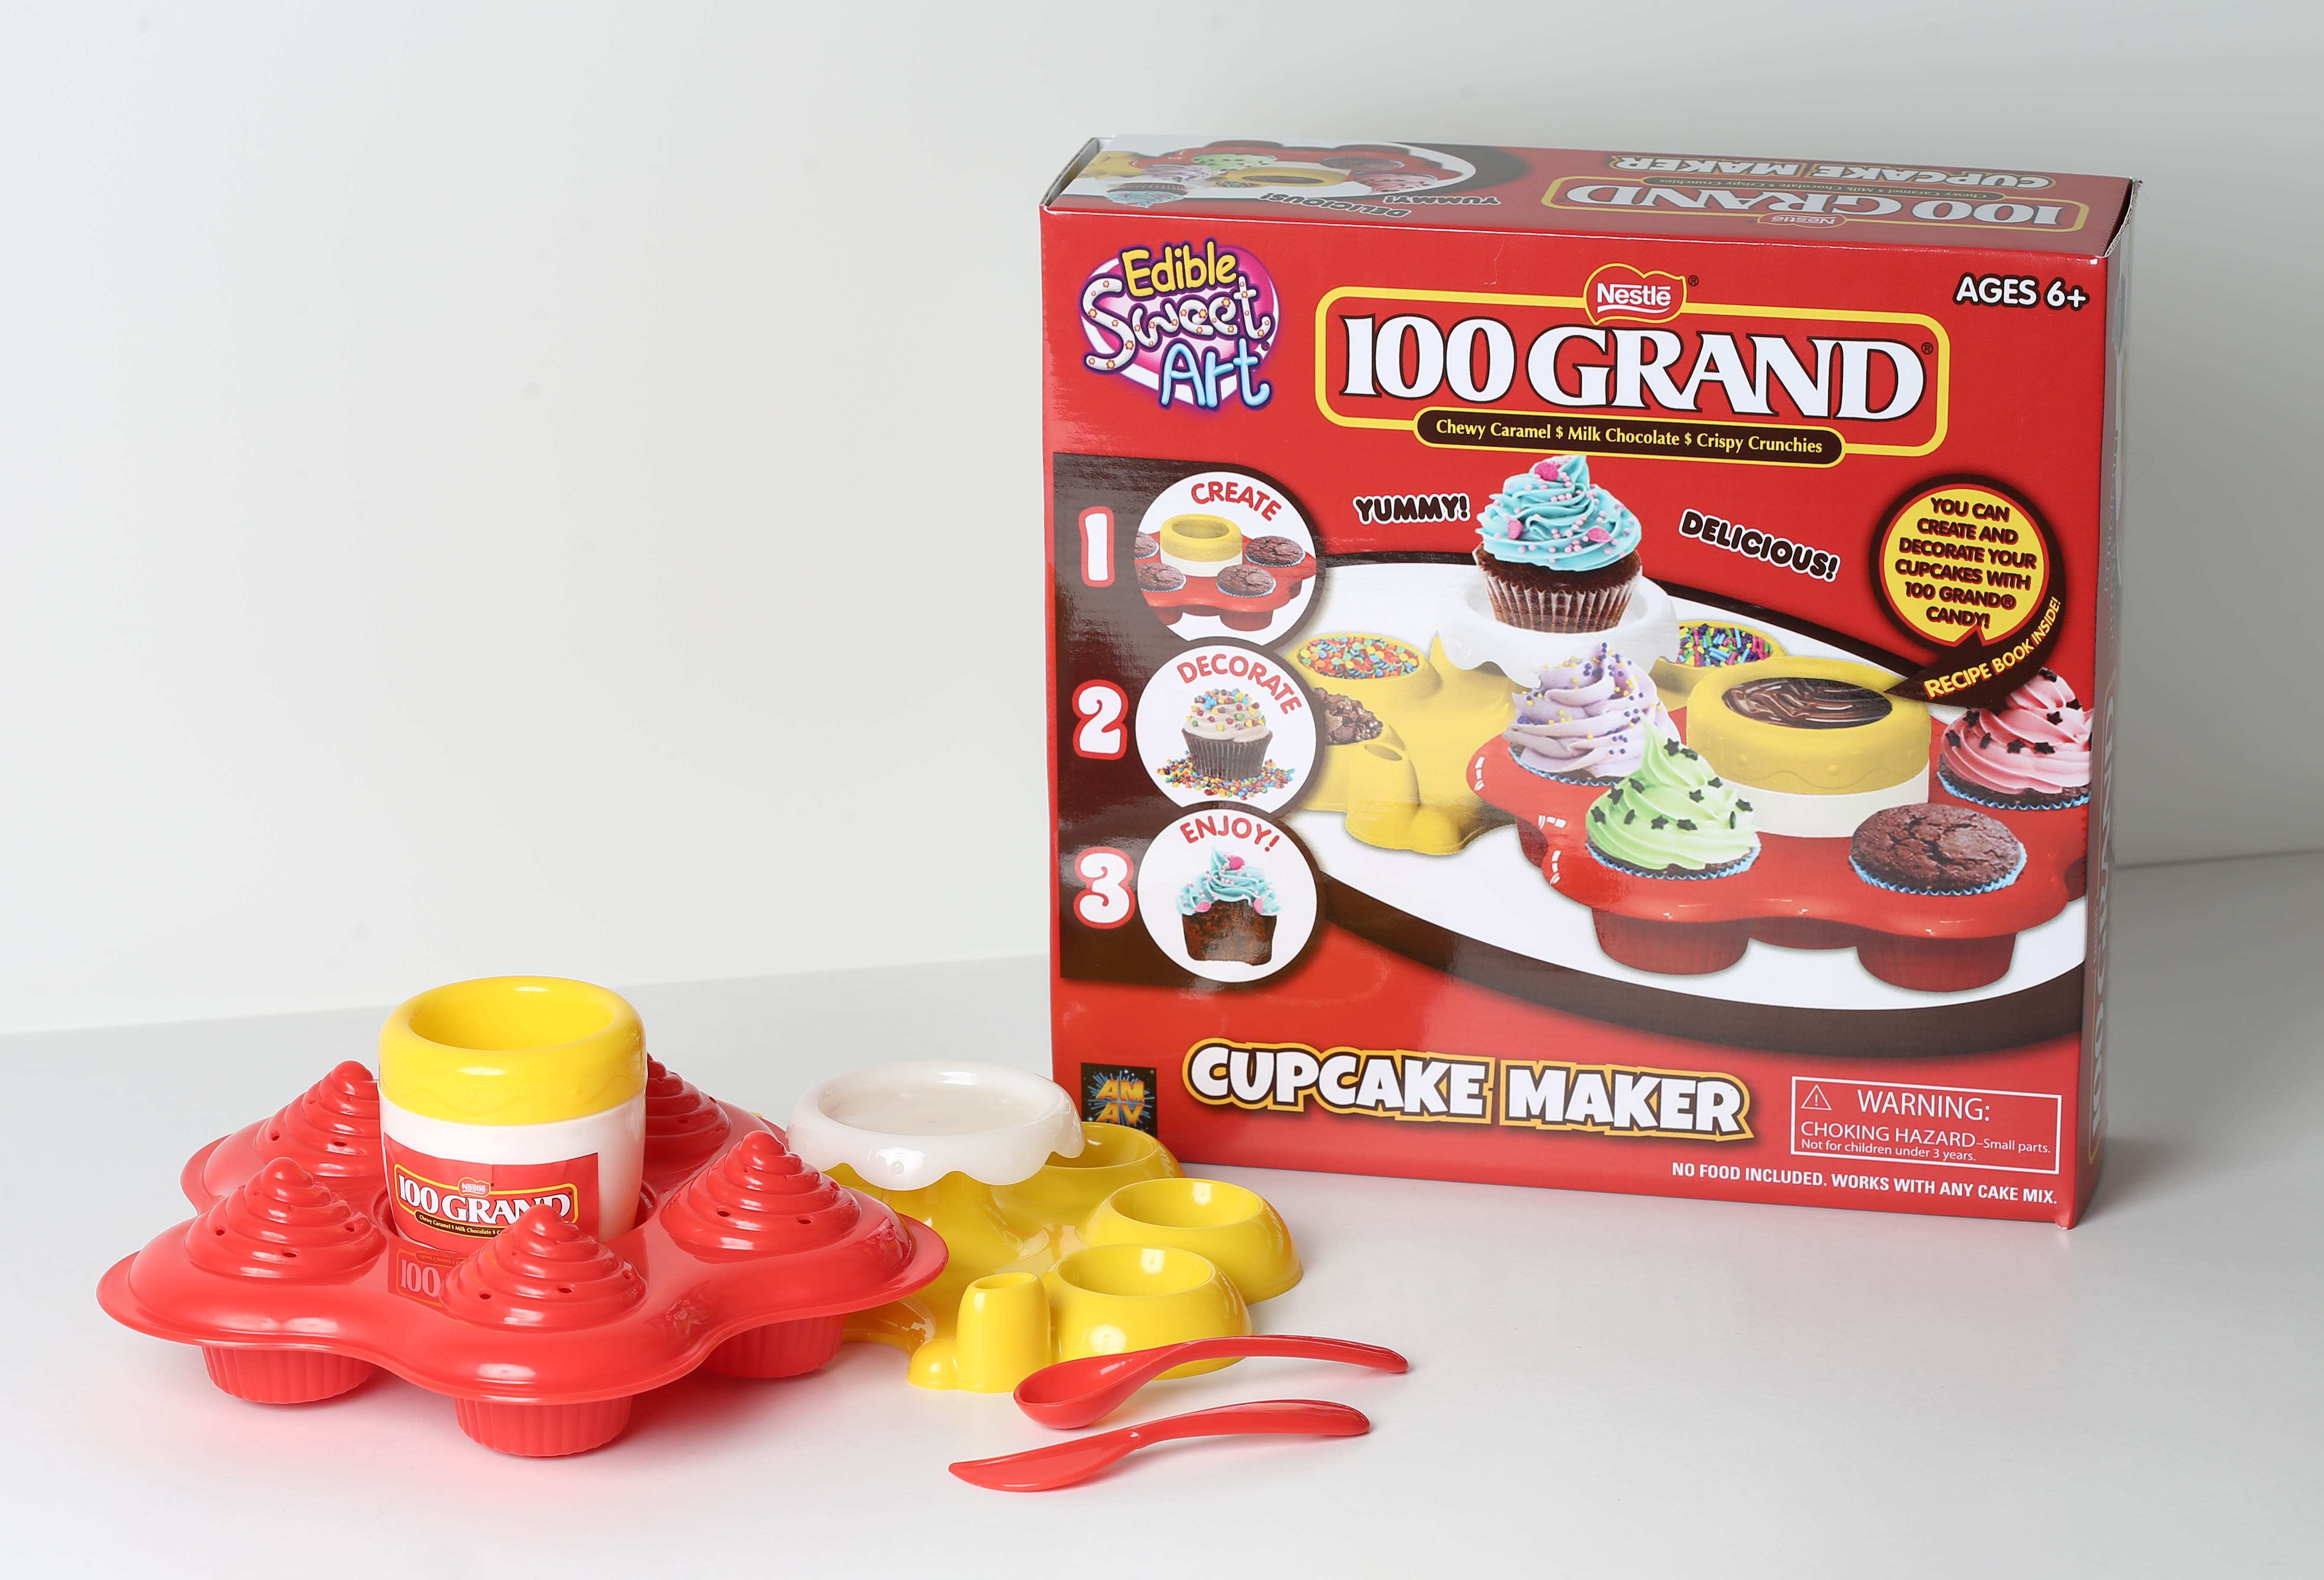 Image of Amav 100 Grand - Cupcake Maker Activity Kit